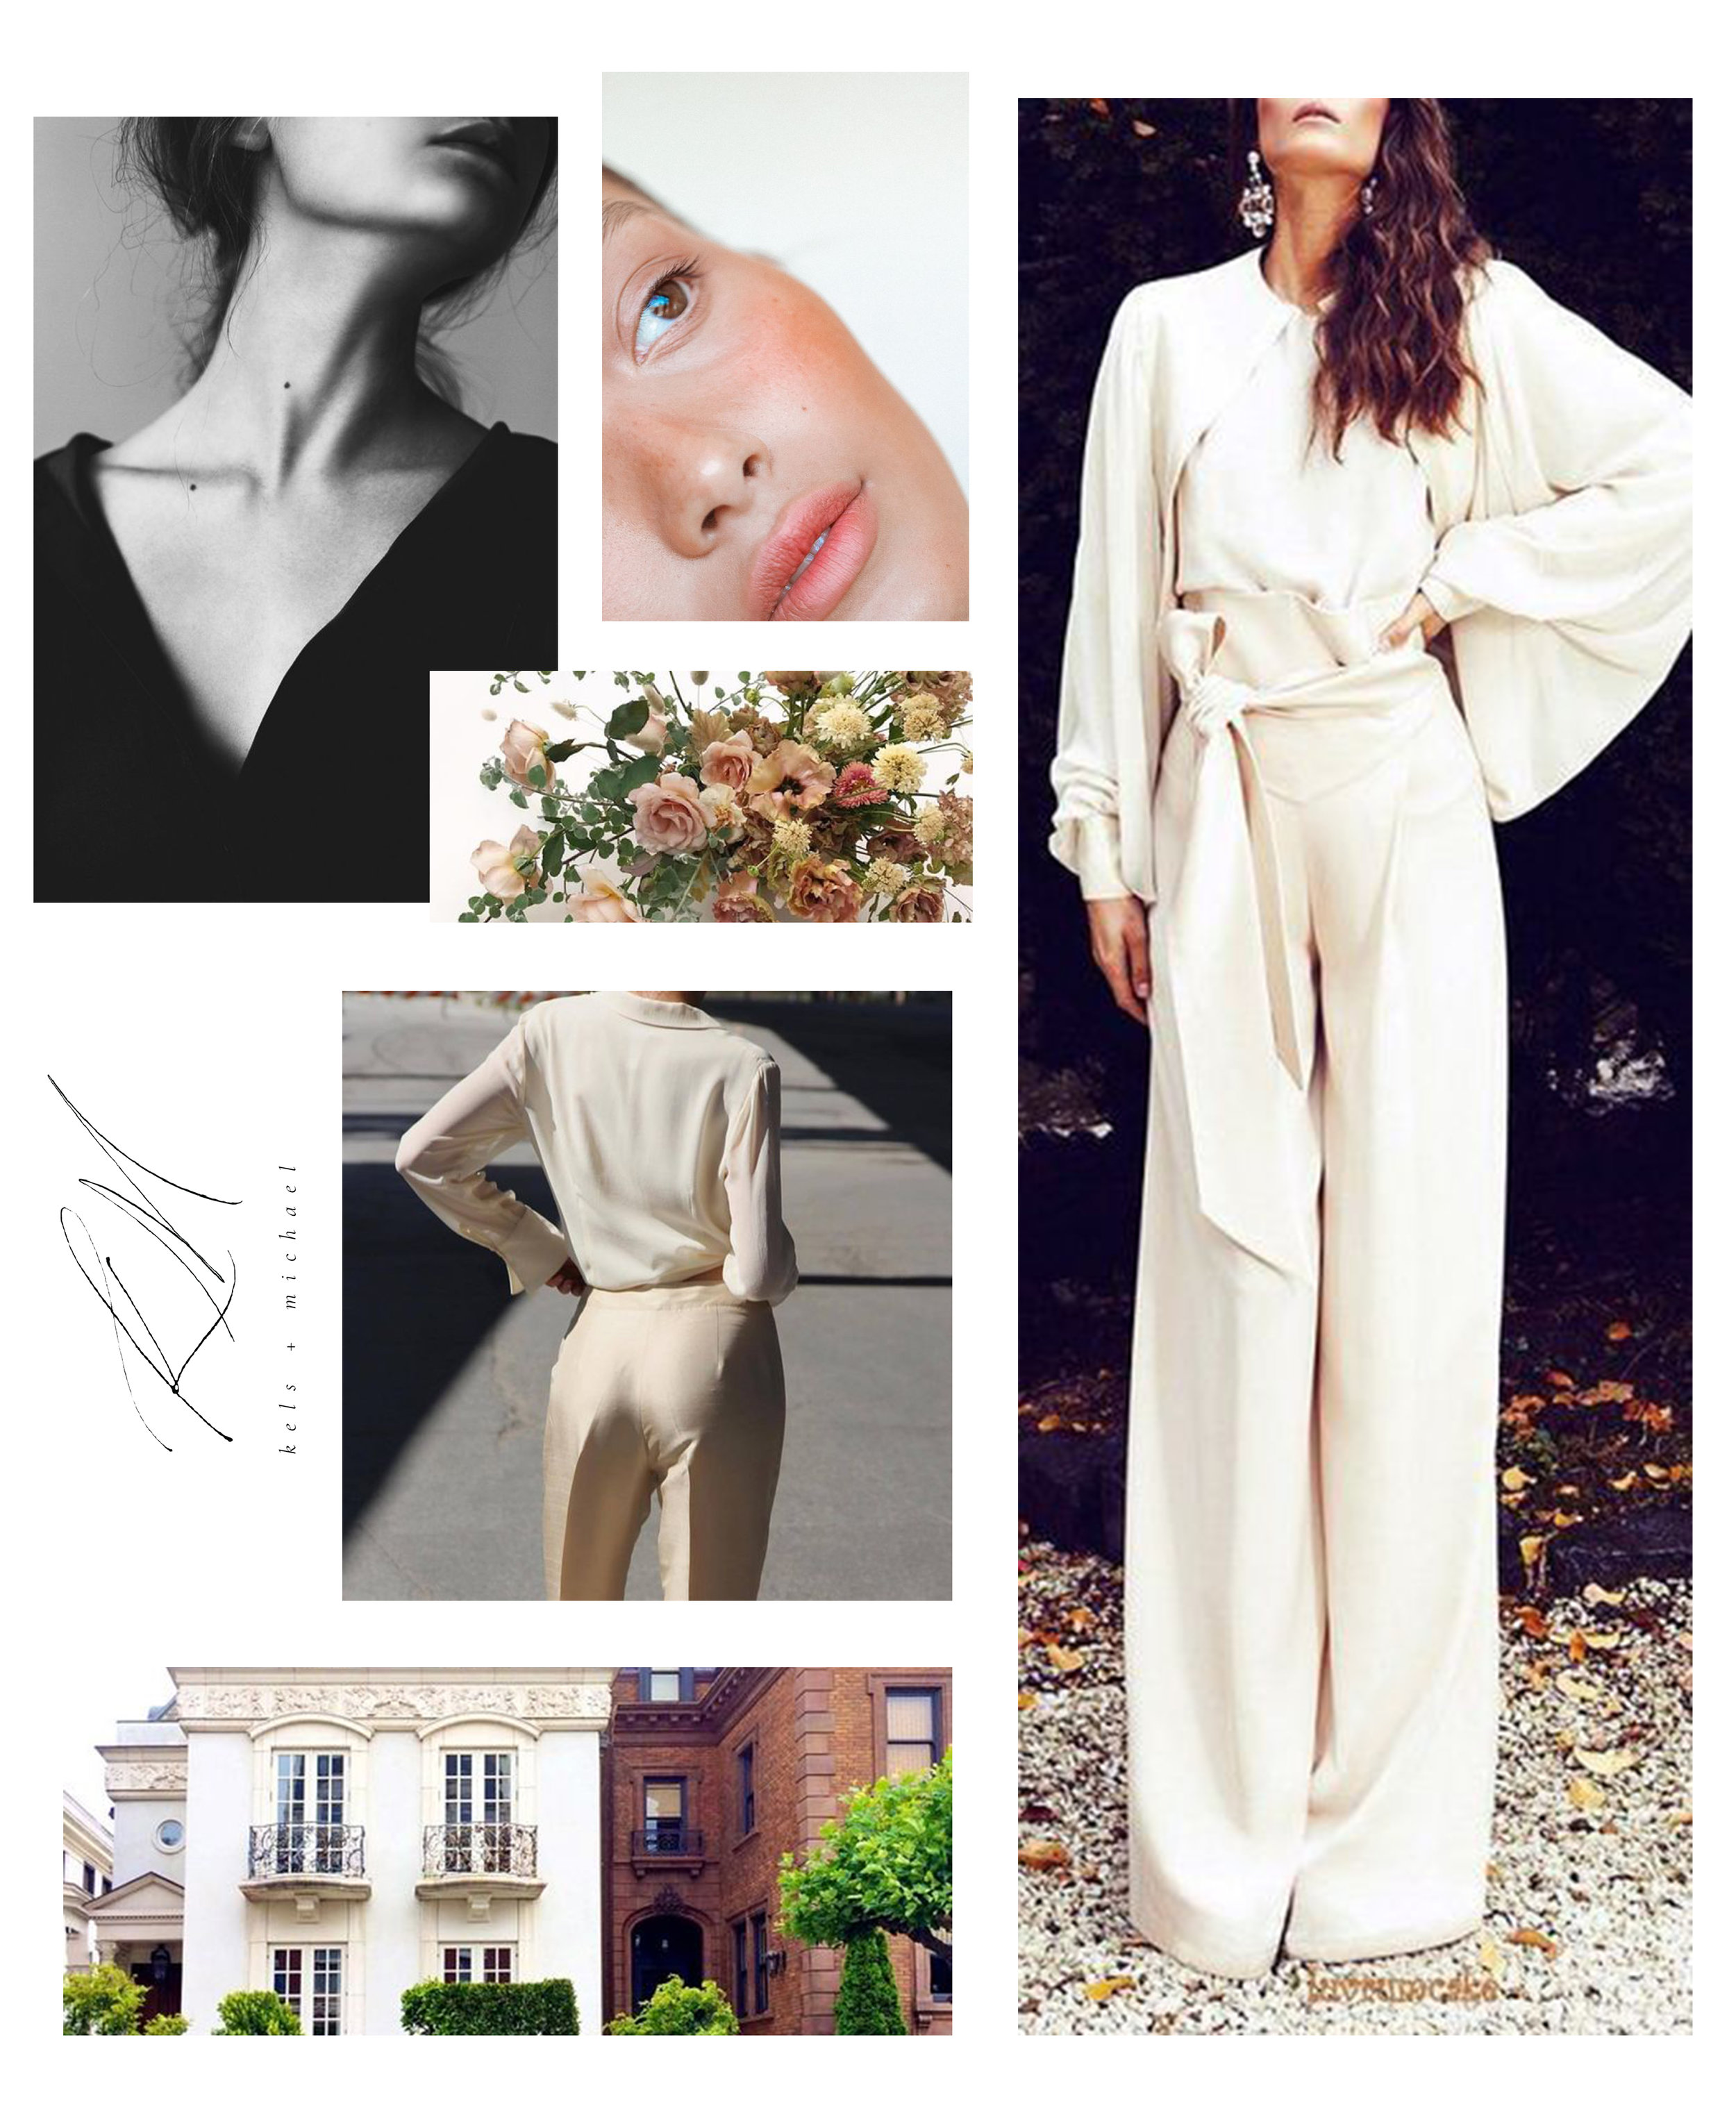 When planning an editorial, I always start with a concept board. Having a board full of inspiration, tailored to the look I'm going for, helps me stay focused when sourcing items and communicating with other vendors.